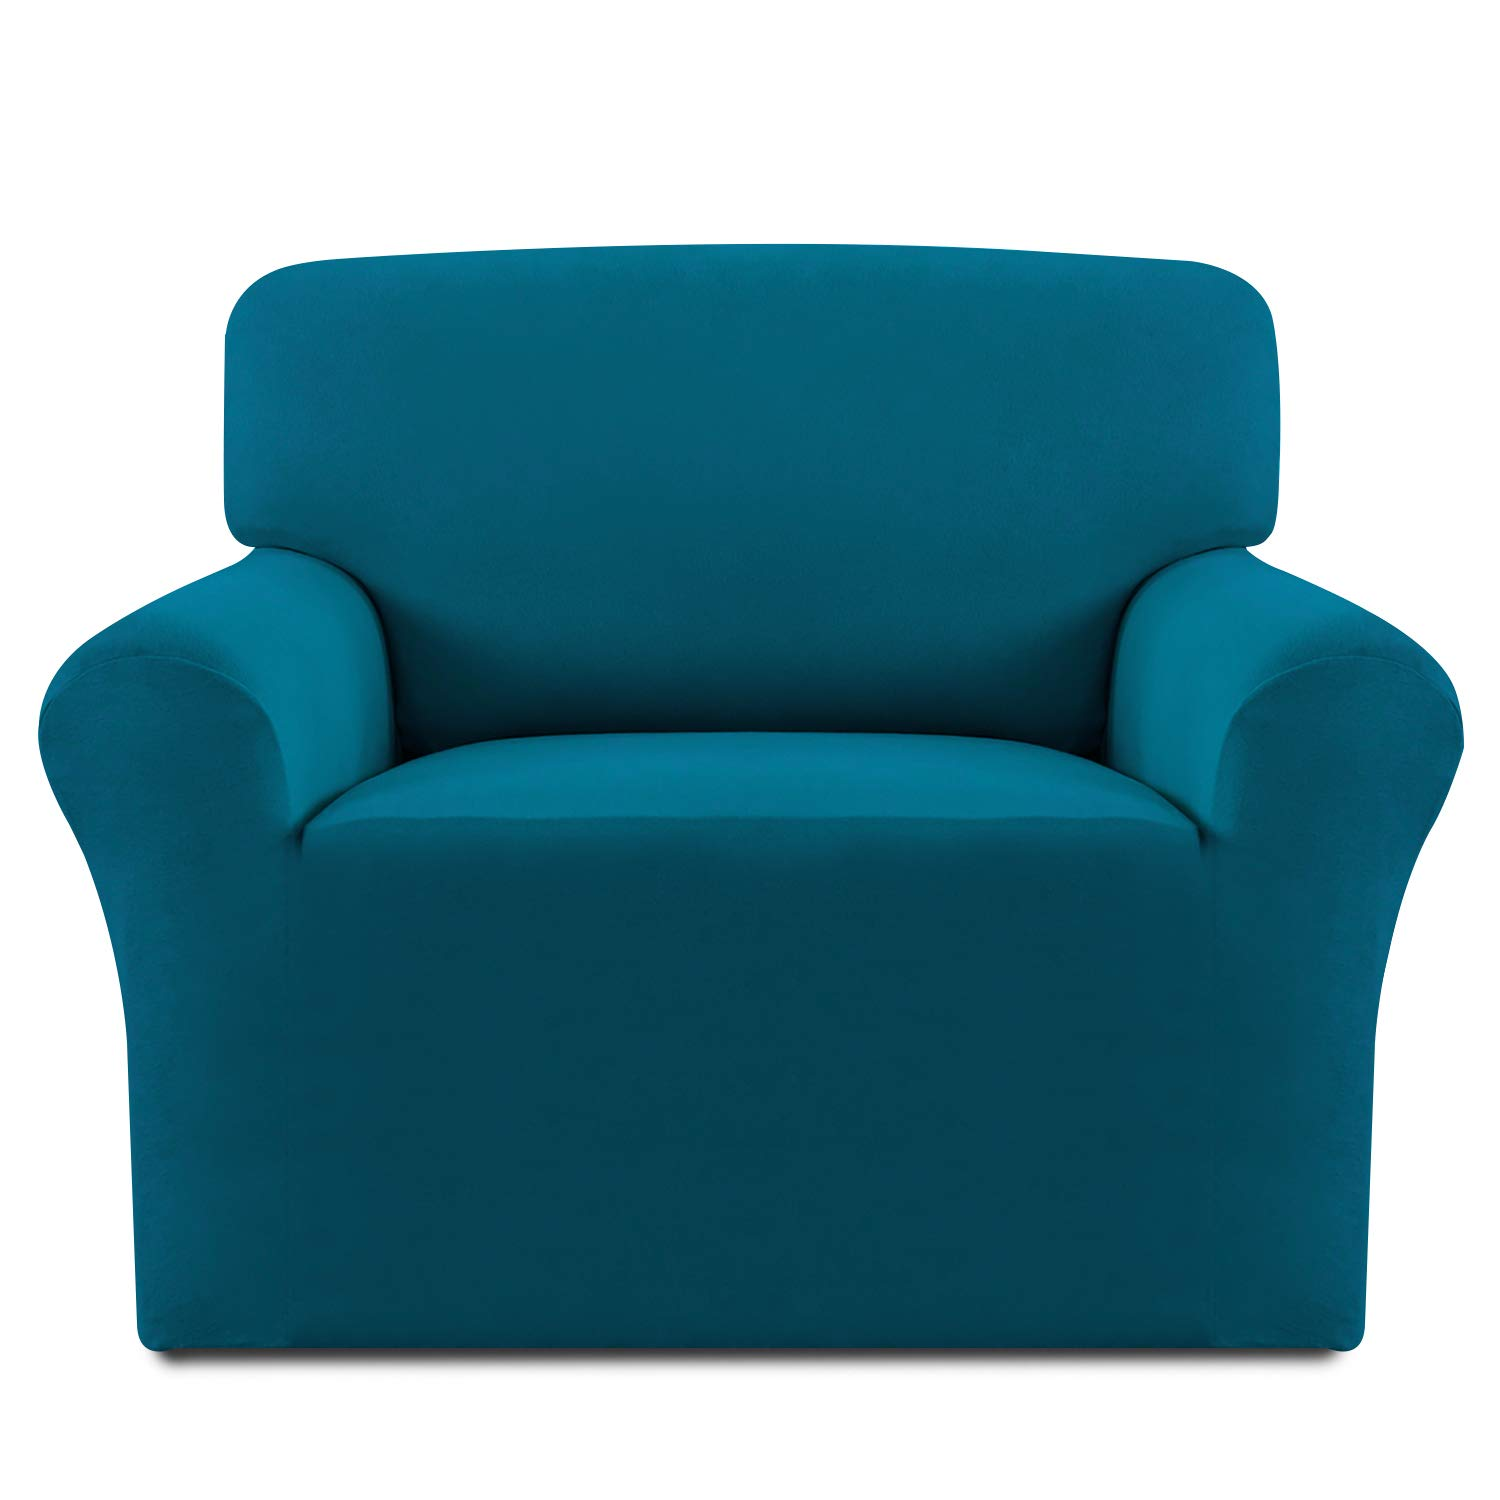 Easy-Going Fleece Stretch Sofa Slipcover – Spandex Anti-Slip Soft Couch Sofa Cover, Washable Furniture Protector with Anti-Skid Foam and Elastic Bottom for Kids, Pets(Chair,Peacock Blue)